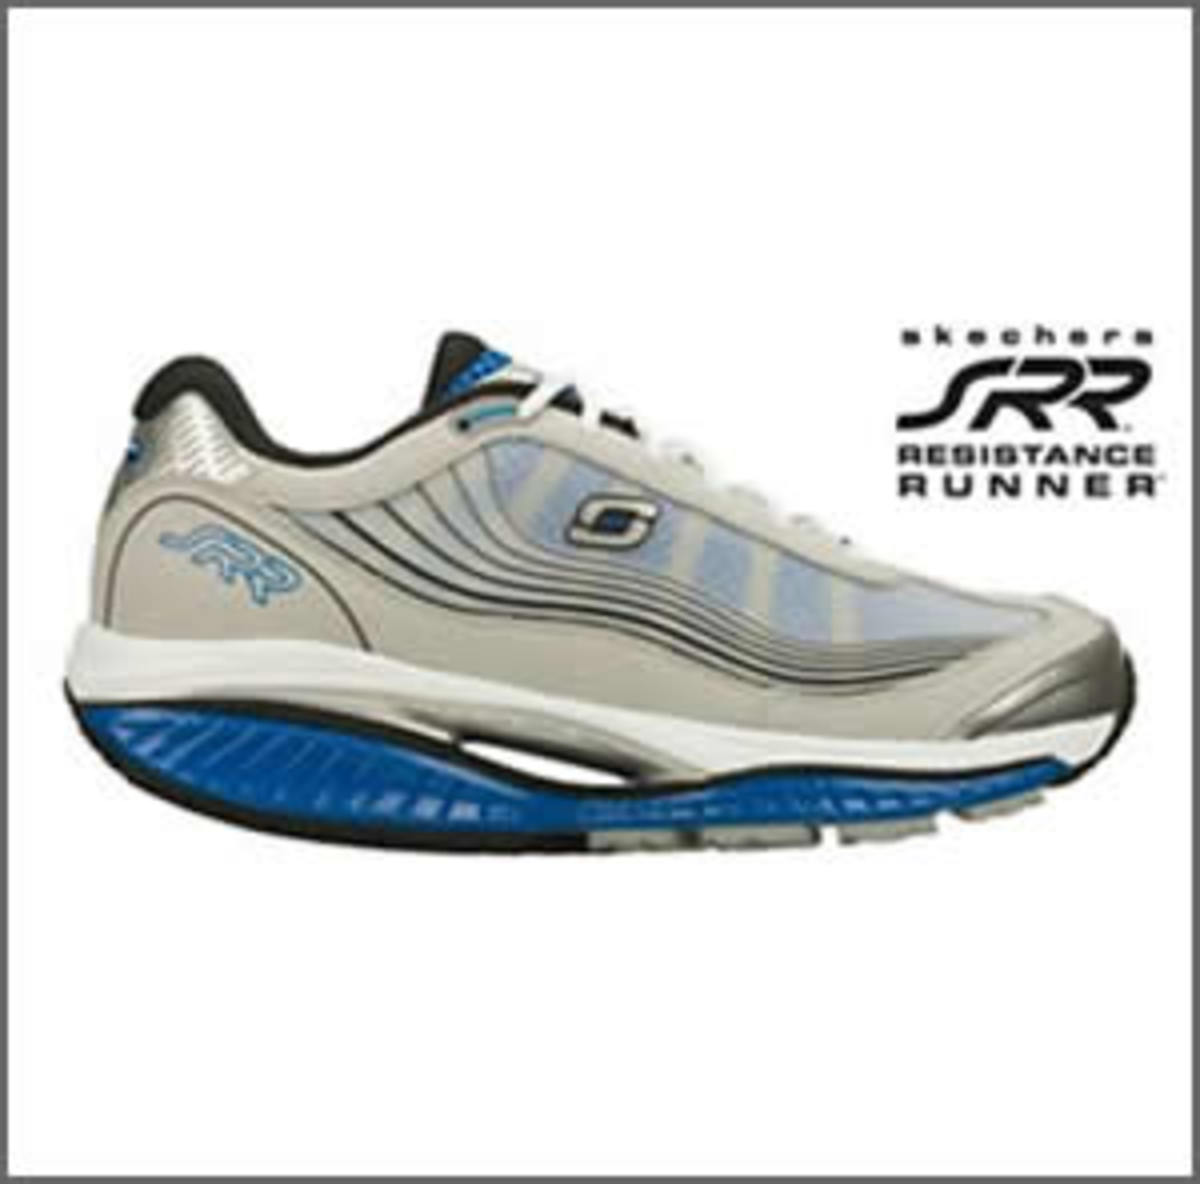 The Skechers Resistance Runner